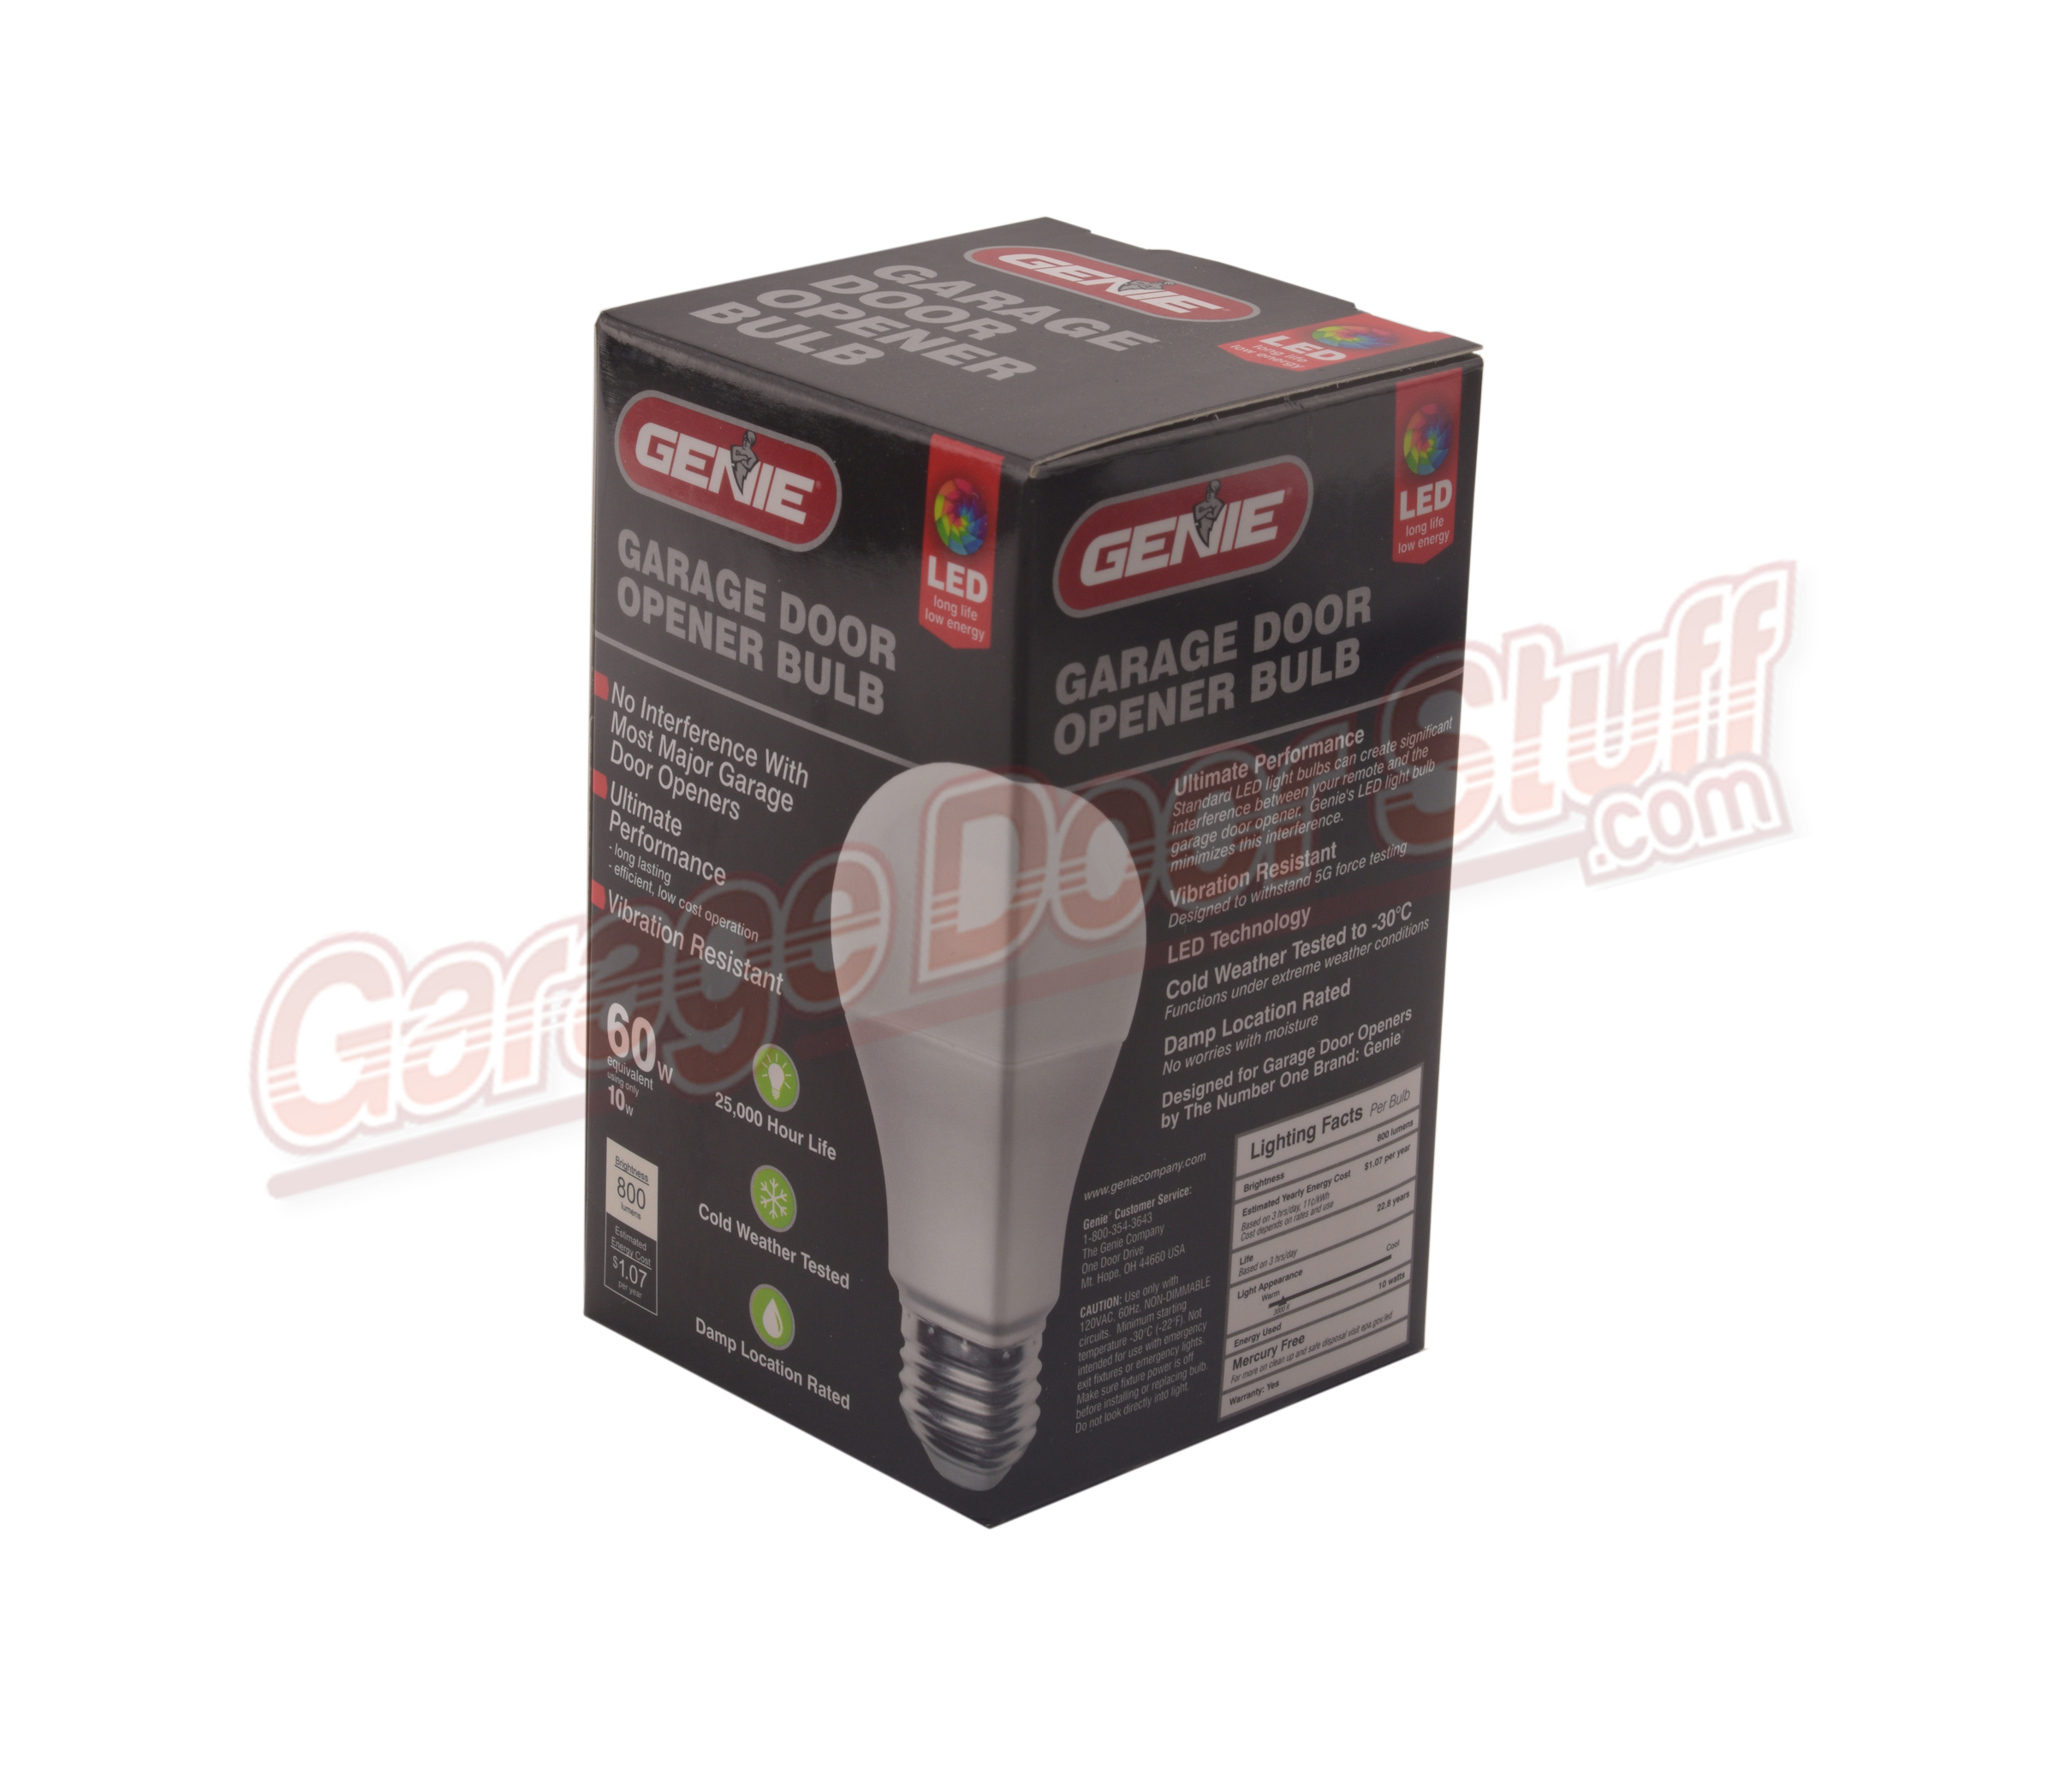 Garage Door Openers And Led Light Bulbs